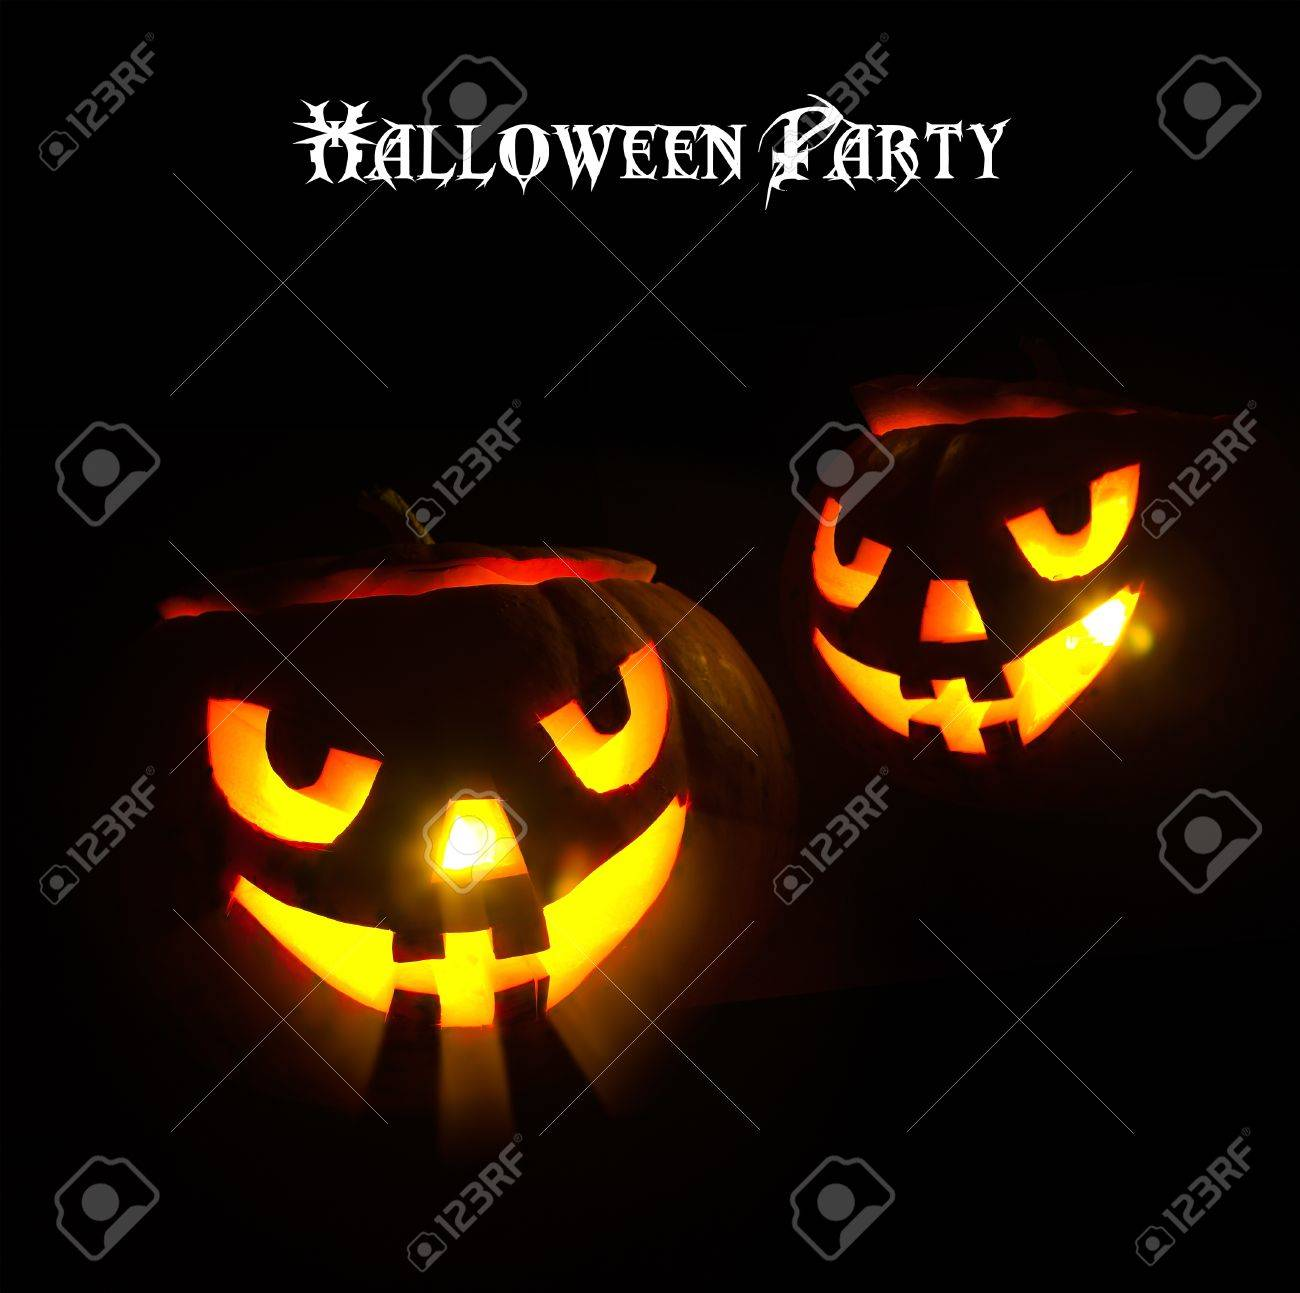 Glowing Eyes Pumpkin Design Halloween Party Stock Photo, Picture ...